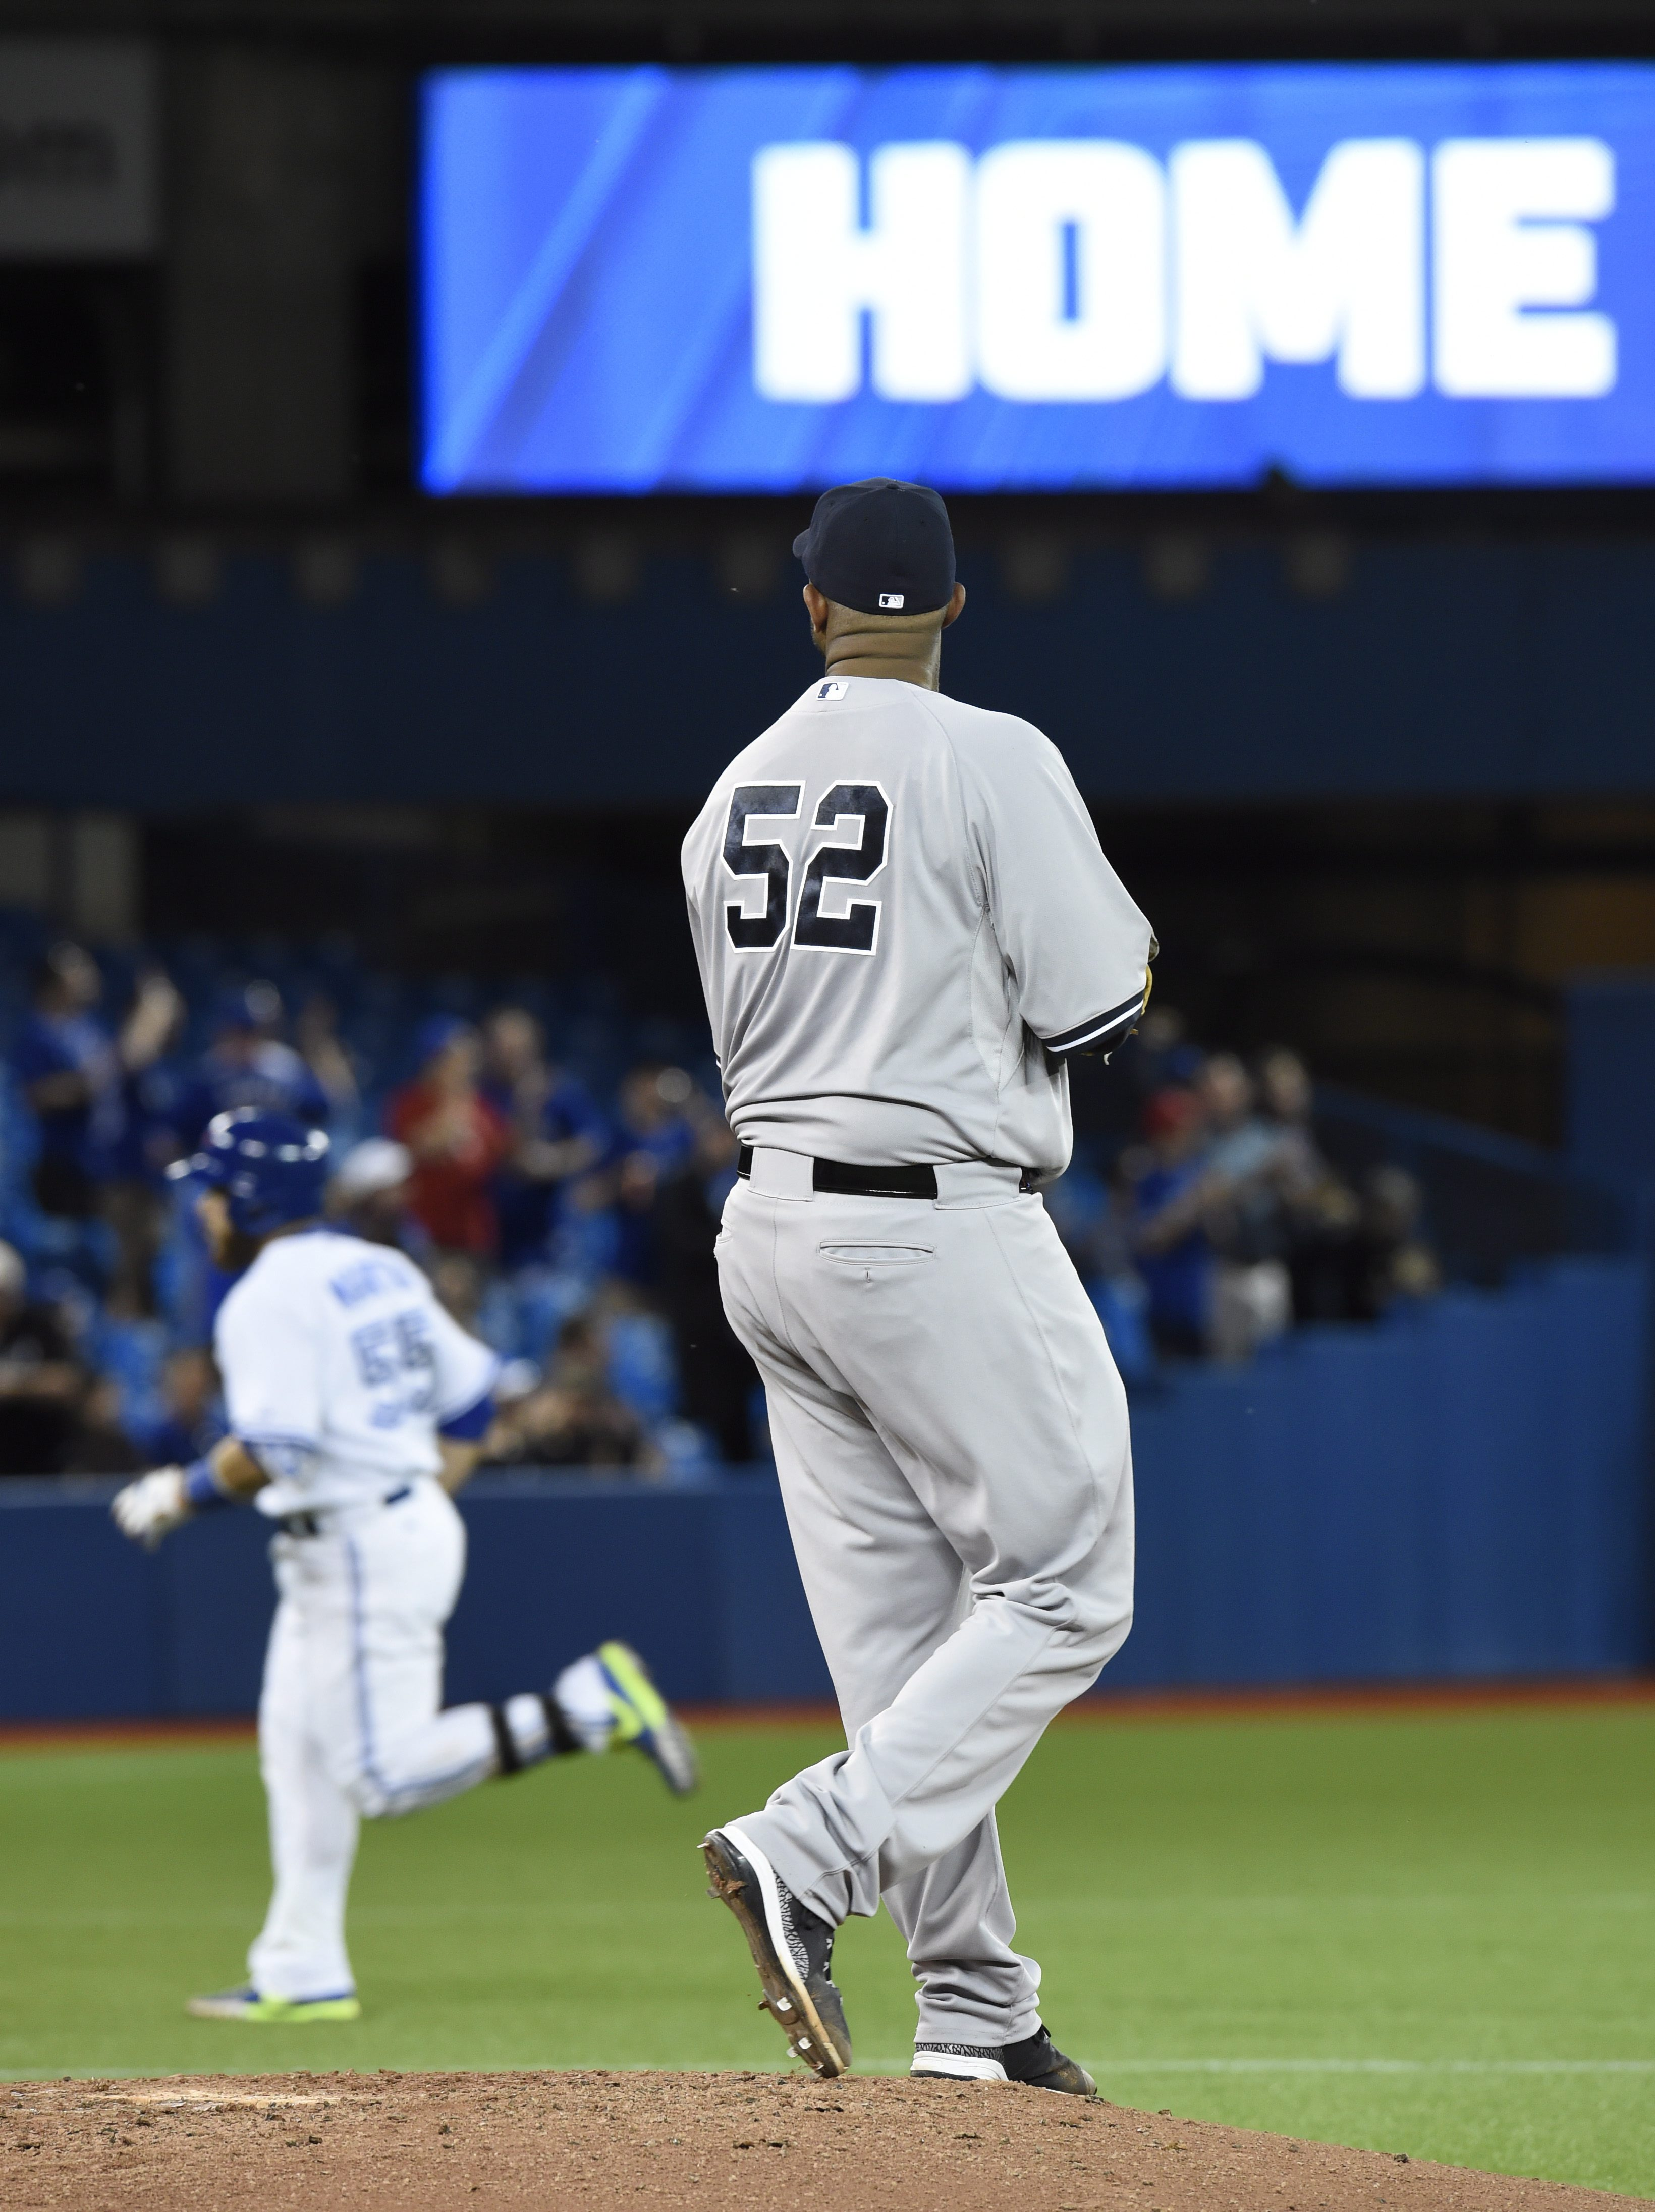 New York Yankees starting pitcher CC Sabathia watches Toronto Blue Jays' Russell Martin round the bases after hitting a home run during sixth inning American League baseball action in Toronto, Wednesday, May 6, 2015.   Frank Gunn(/The Canadian Press via A